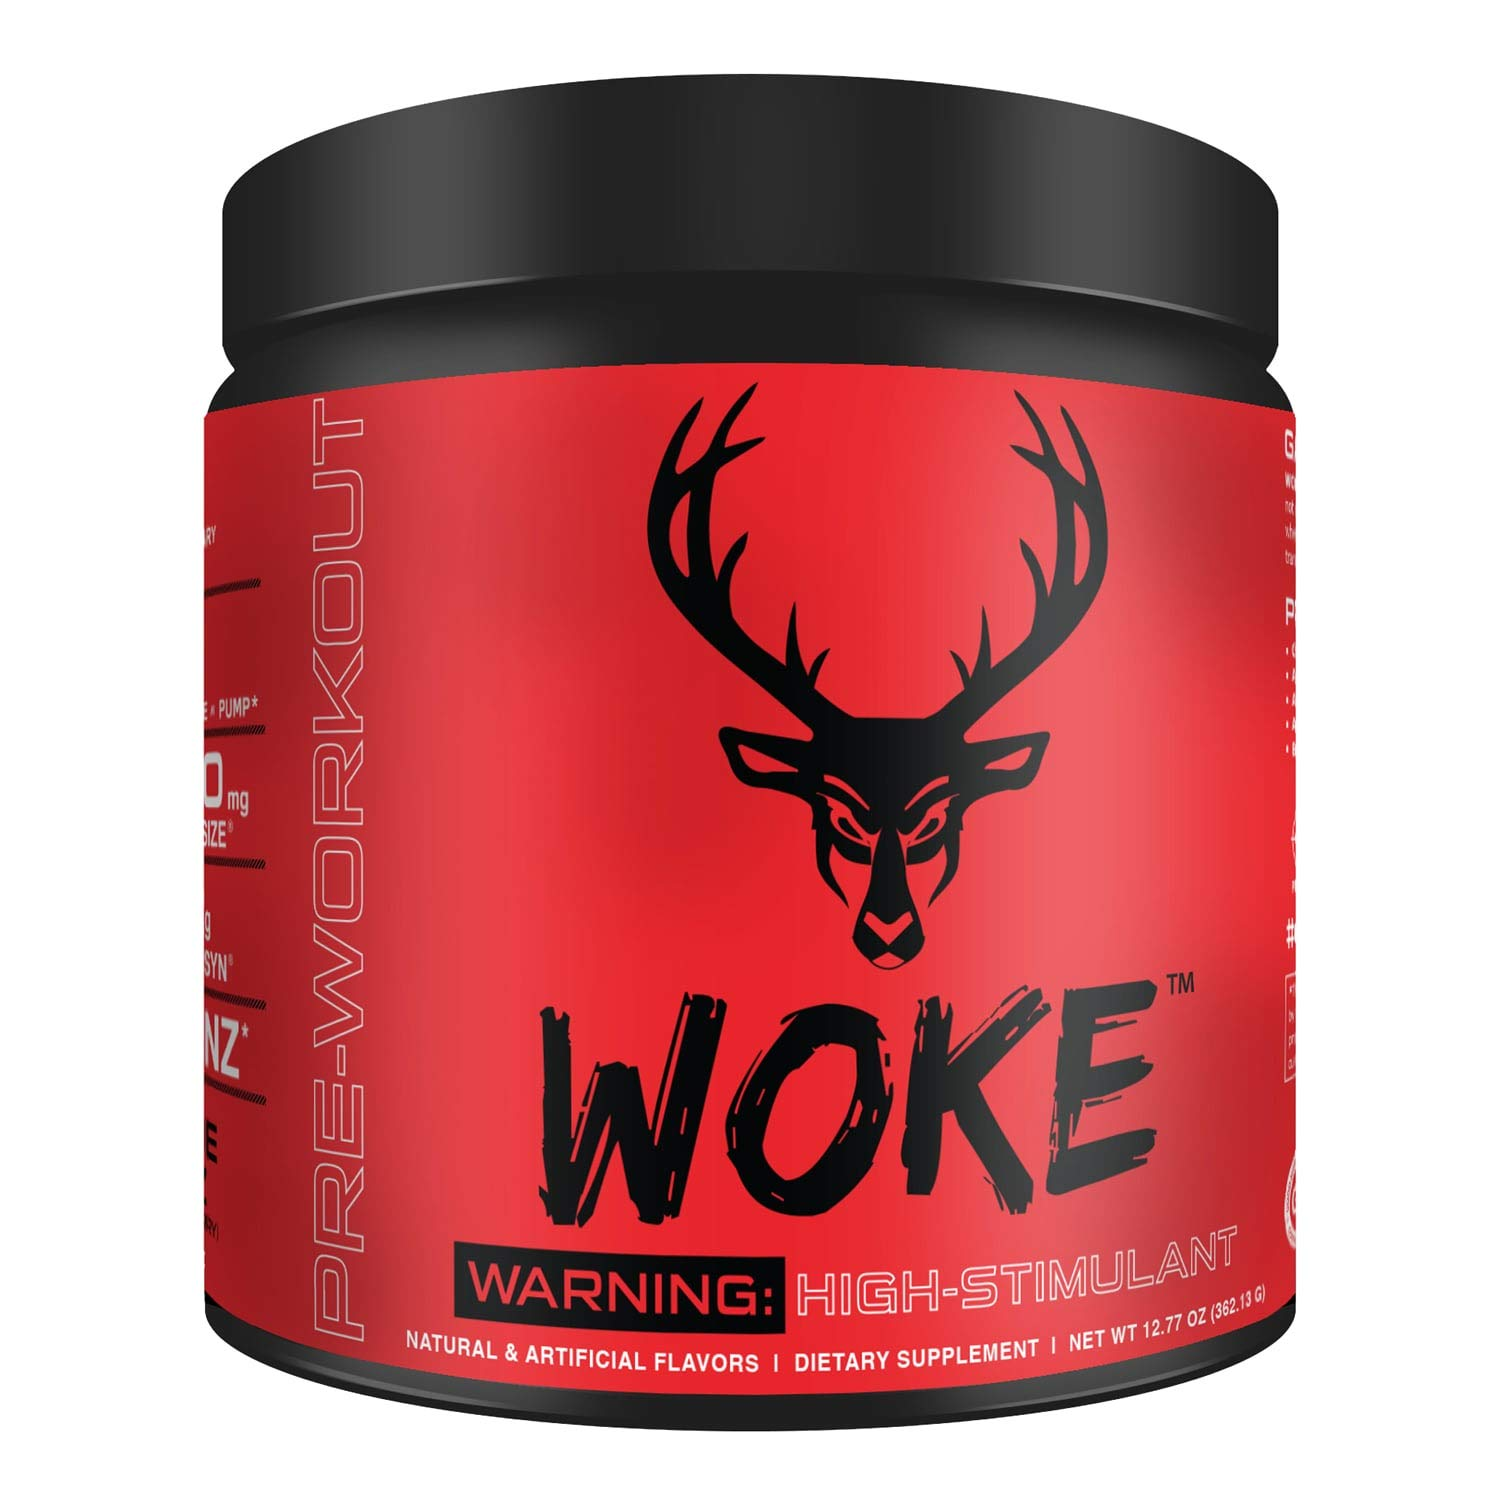 Bucked Up - Woke - HIGH STIM Pre Workout - Best Tasting - Focus Nootropic, Pump, Strength and Growth, 30 Servings (Blood Raz) by BUCKED UP (Image #1)